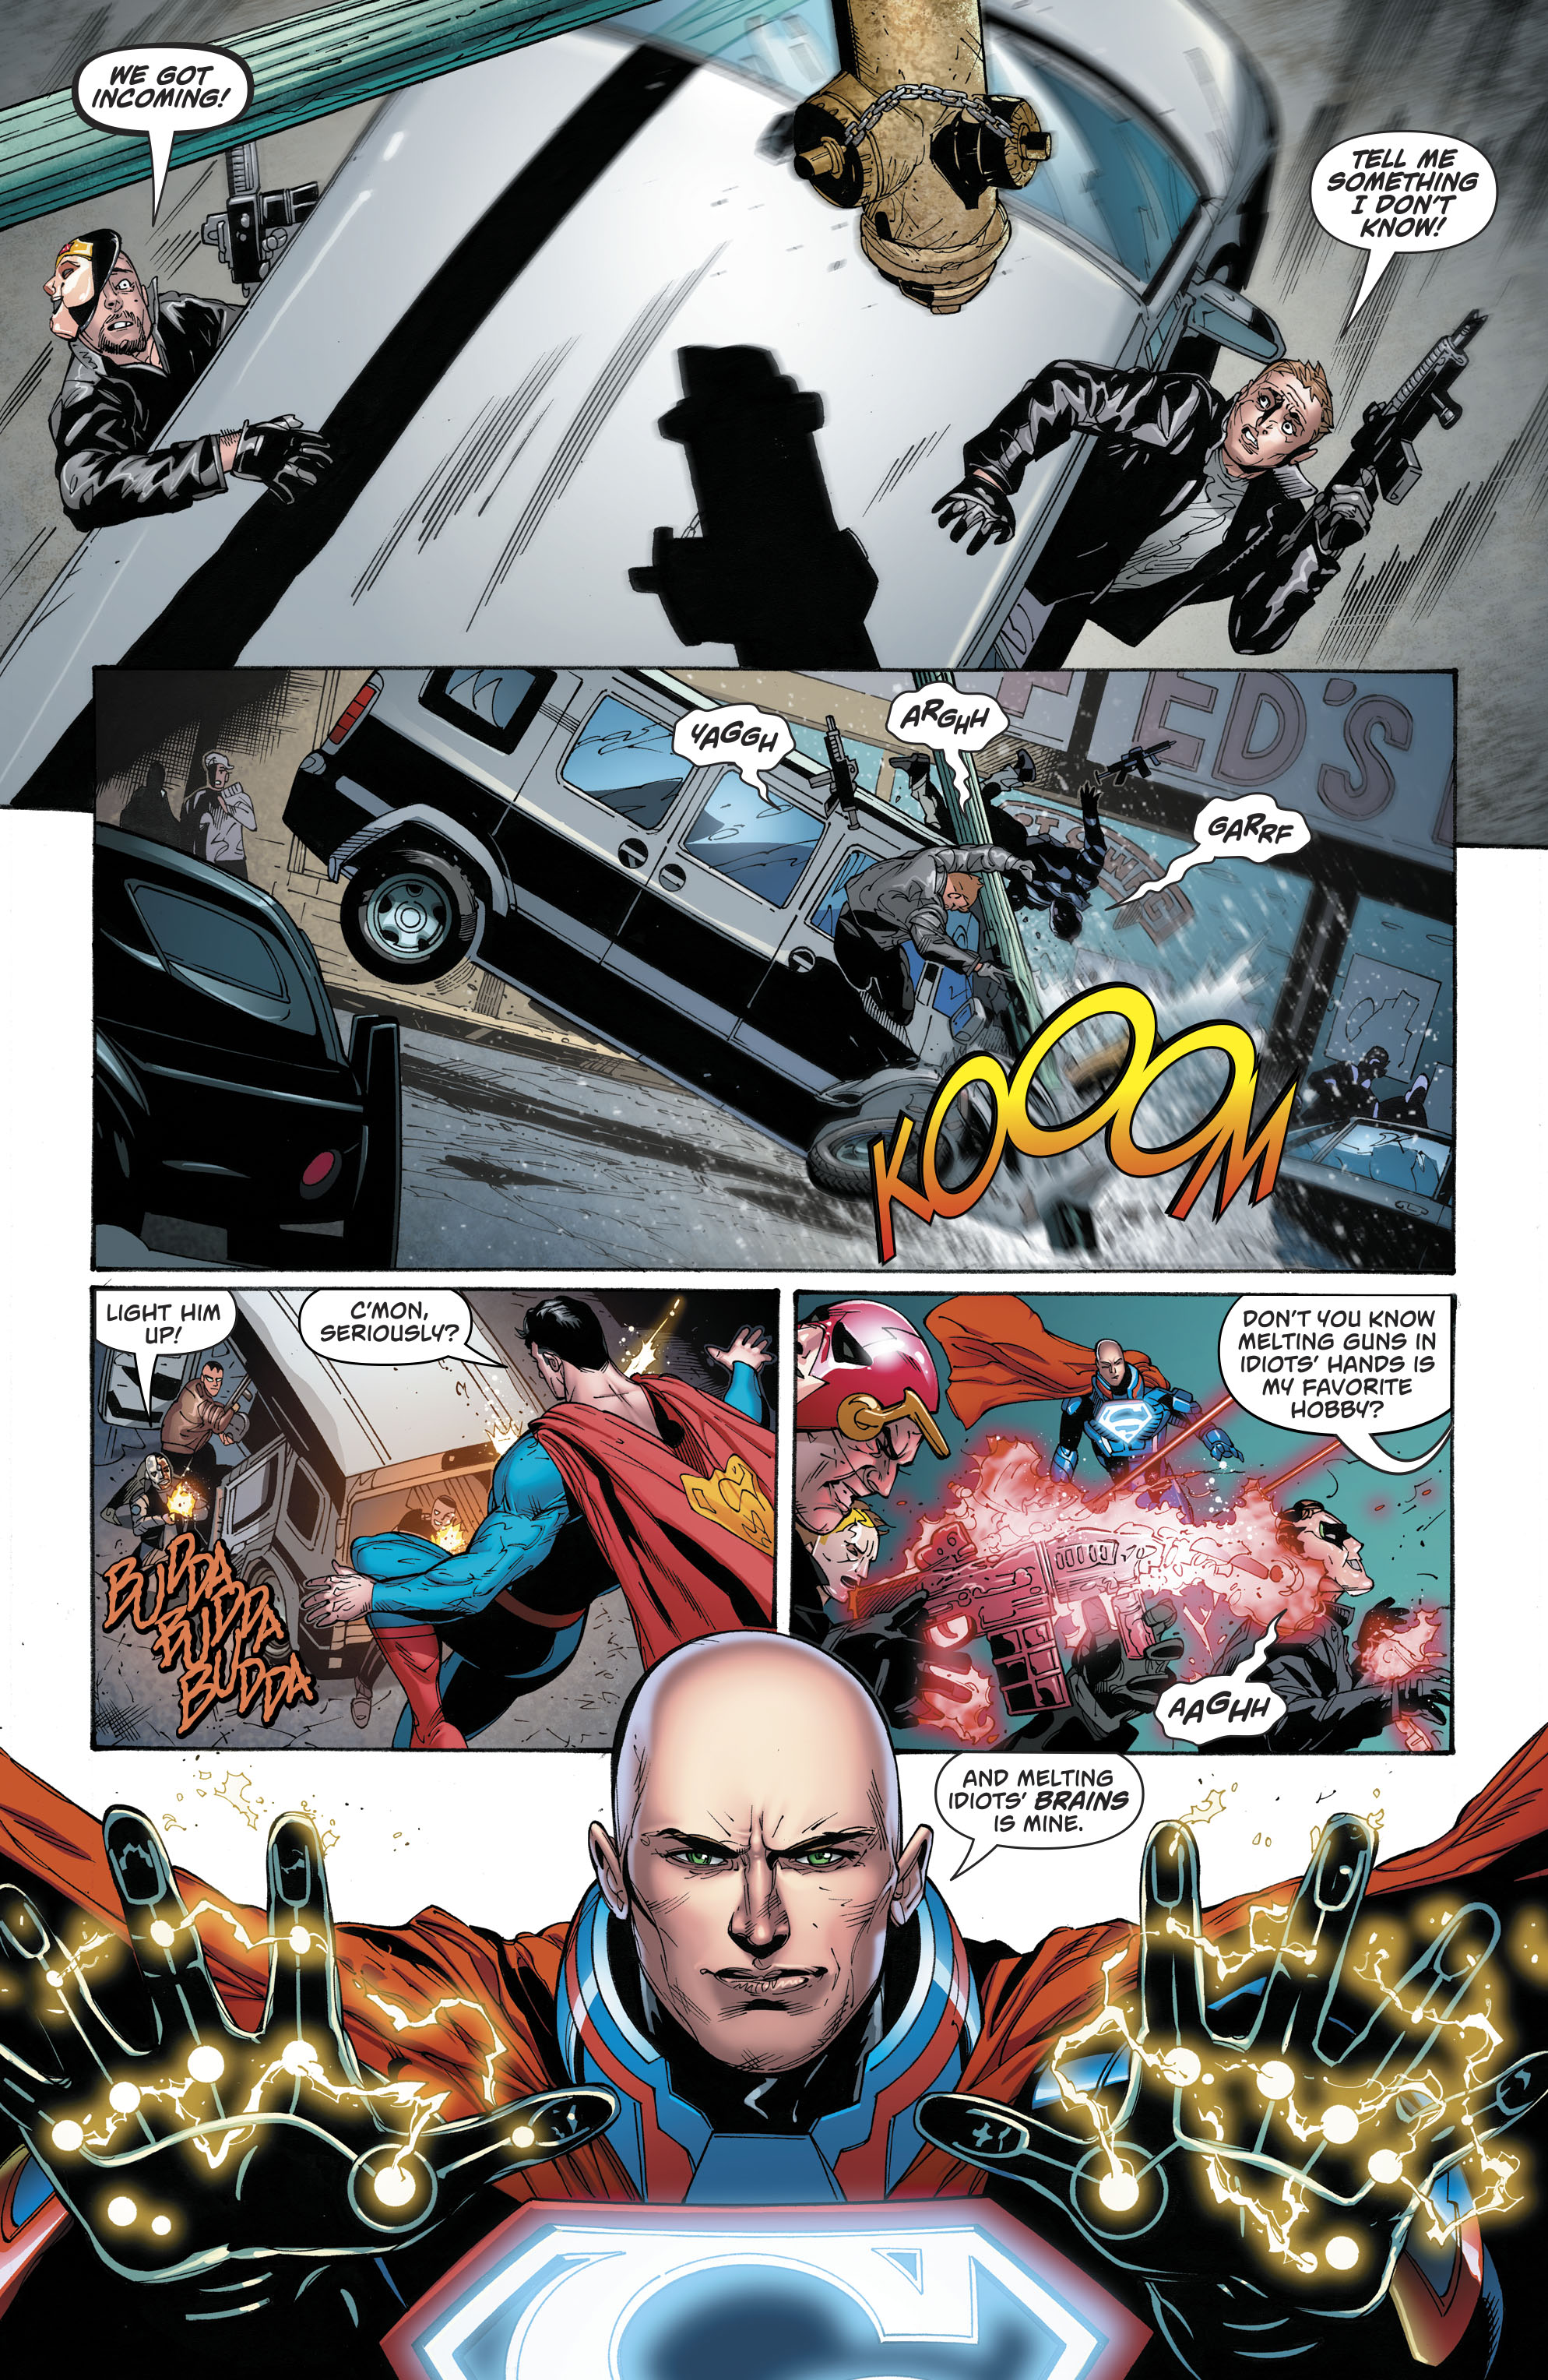 Superman And Lex Luthor Stopping a Robbery (Rebirth)